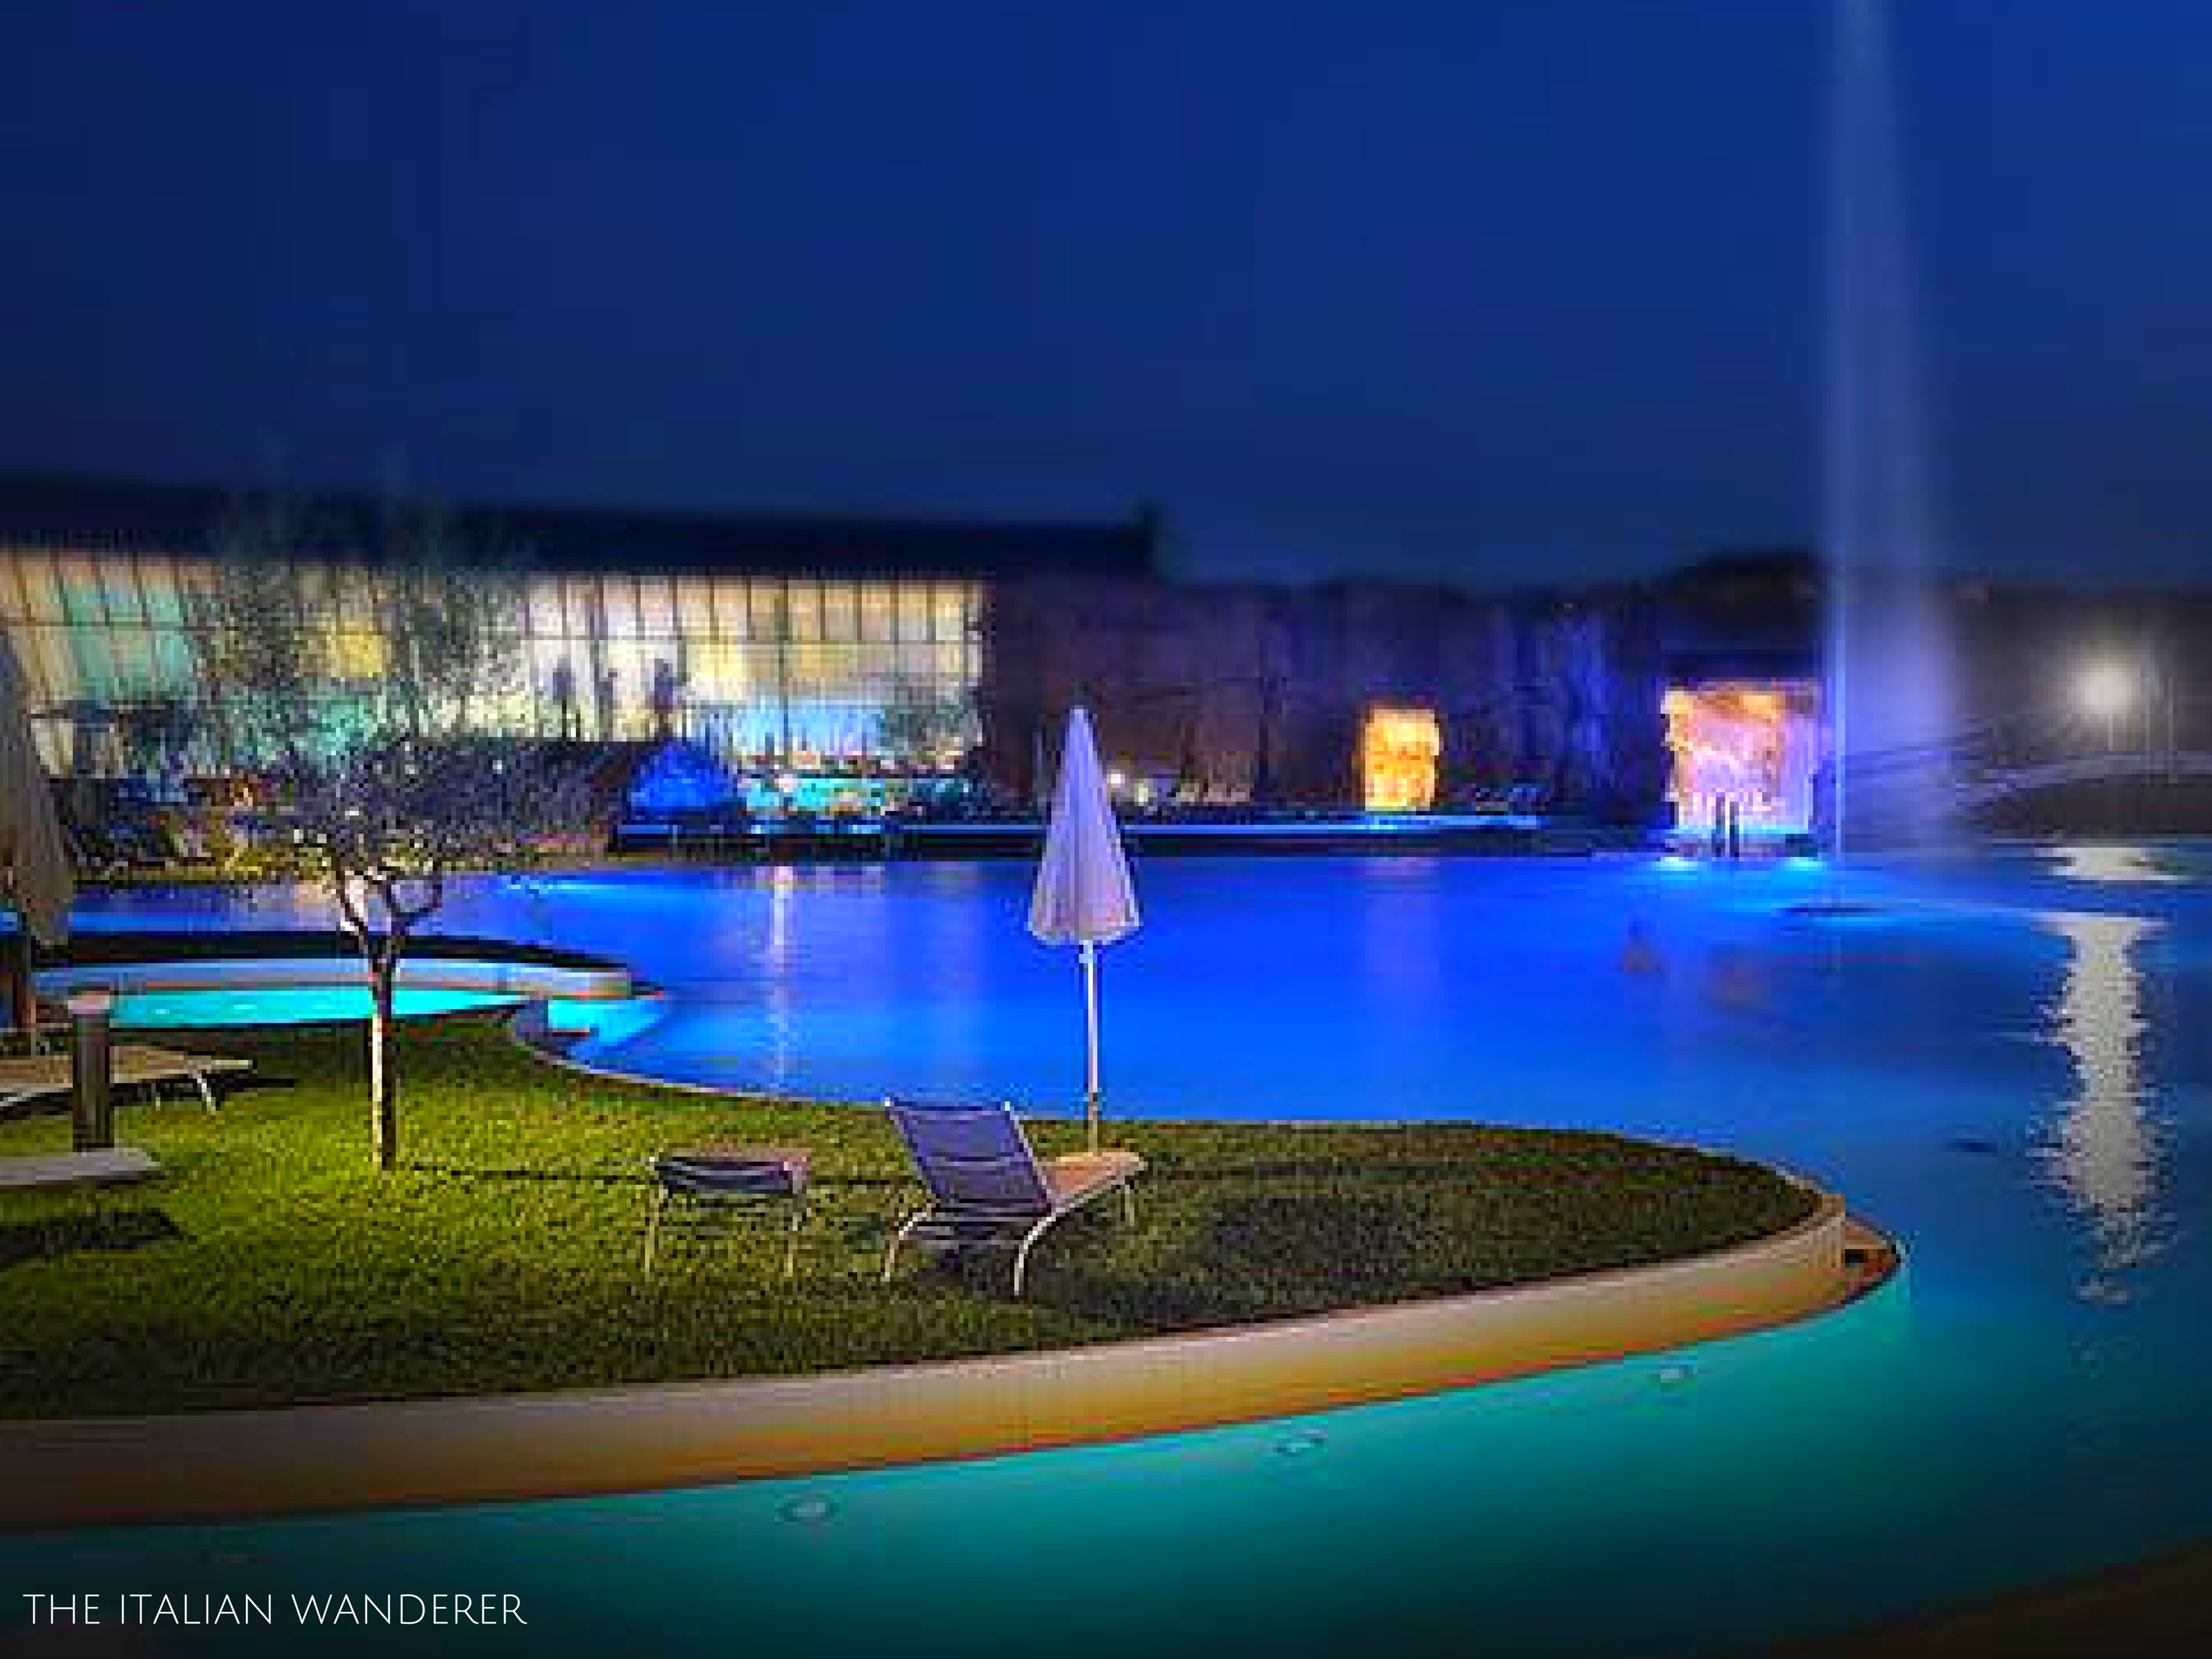 Aquardens, the thermal park of Verona located in Pescantina, few minutes from the city